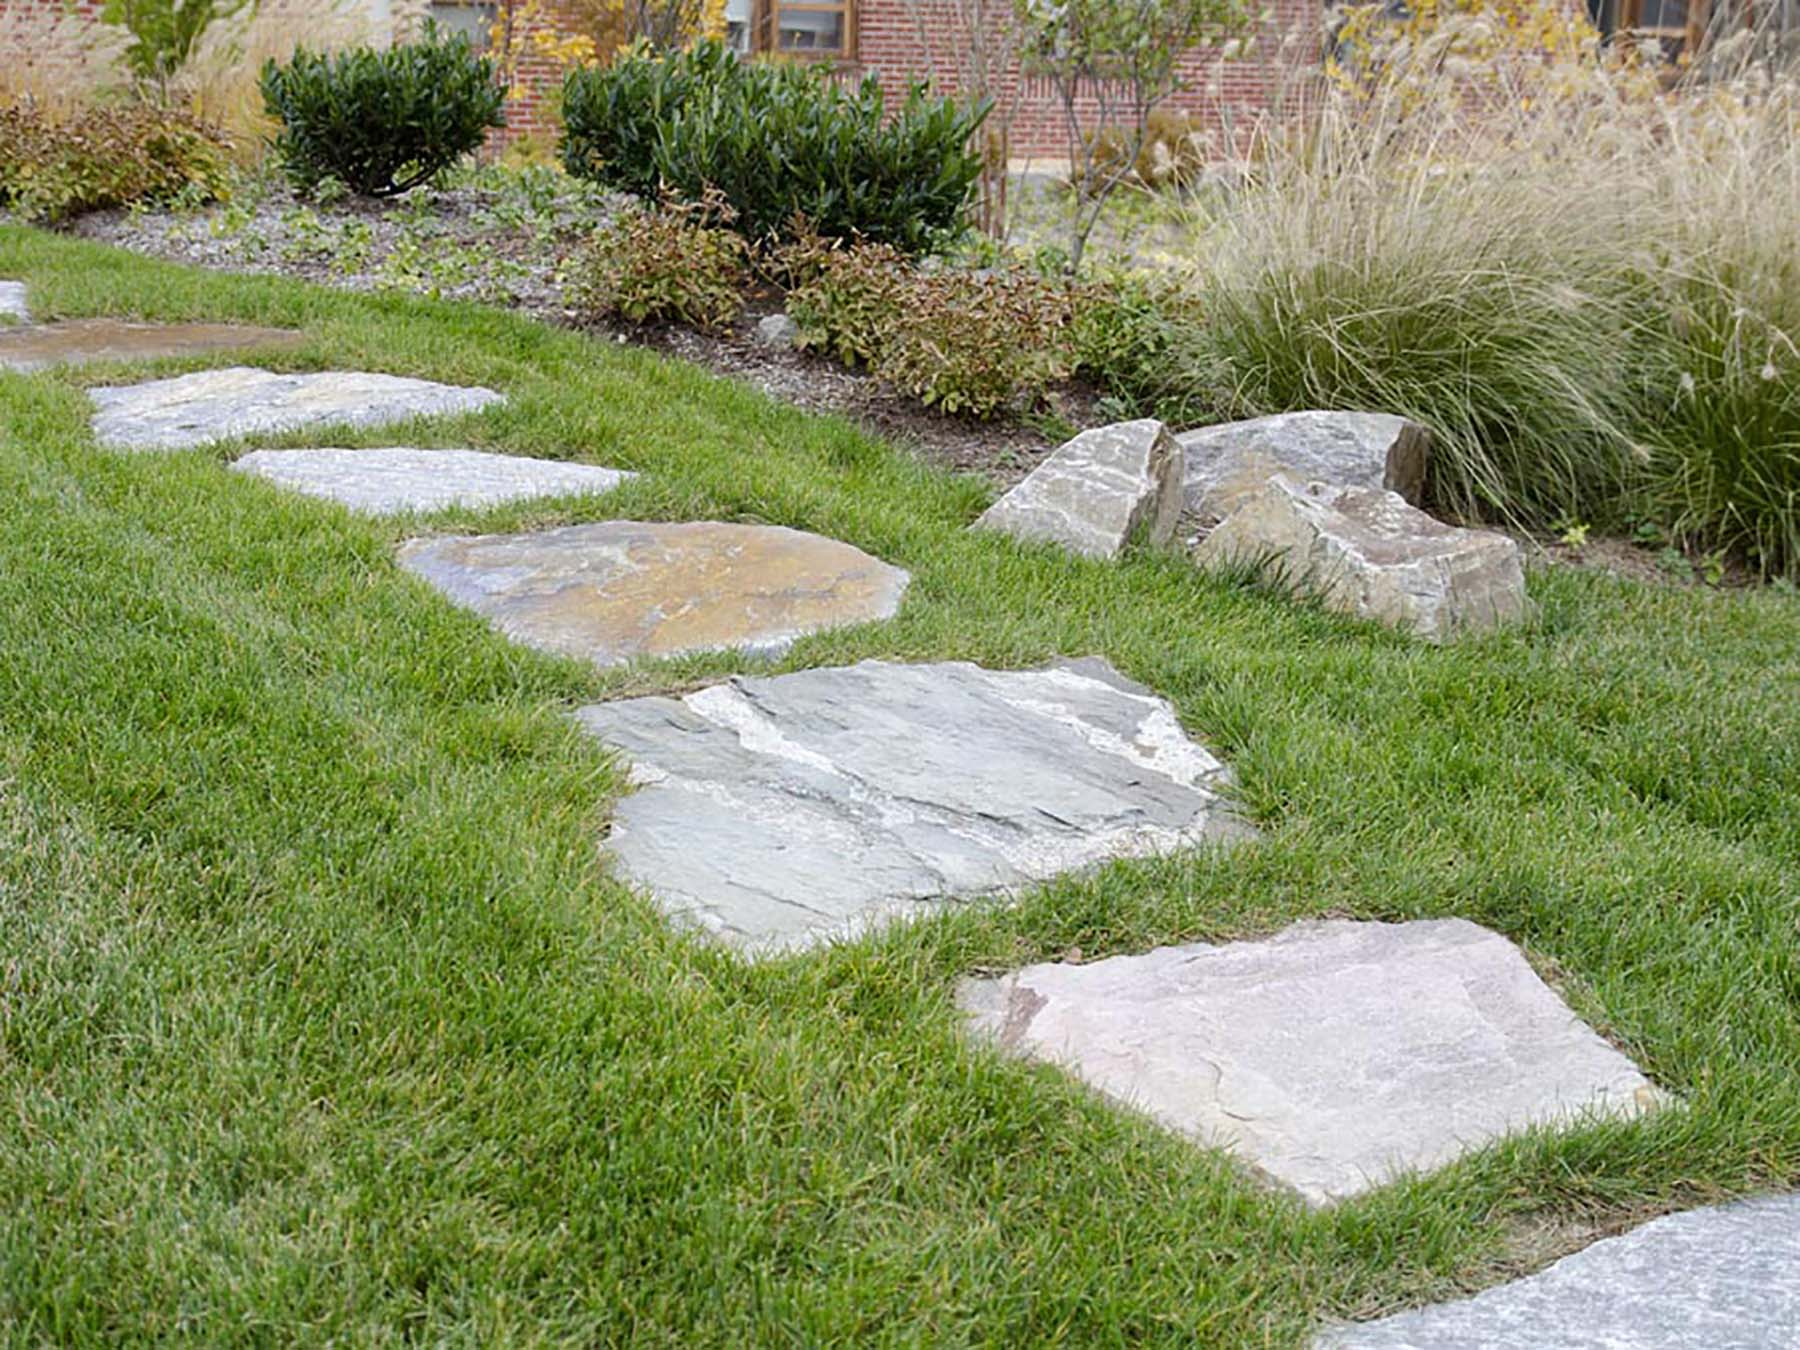 Ticonderoga Granite Flagging in grass